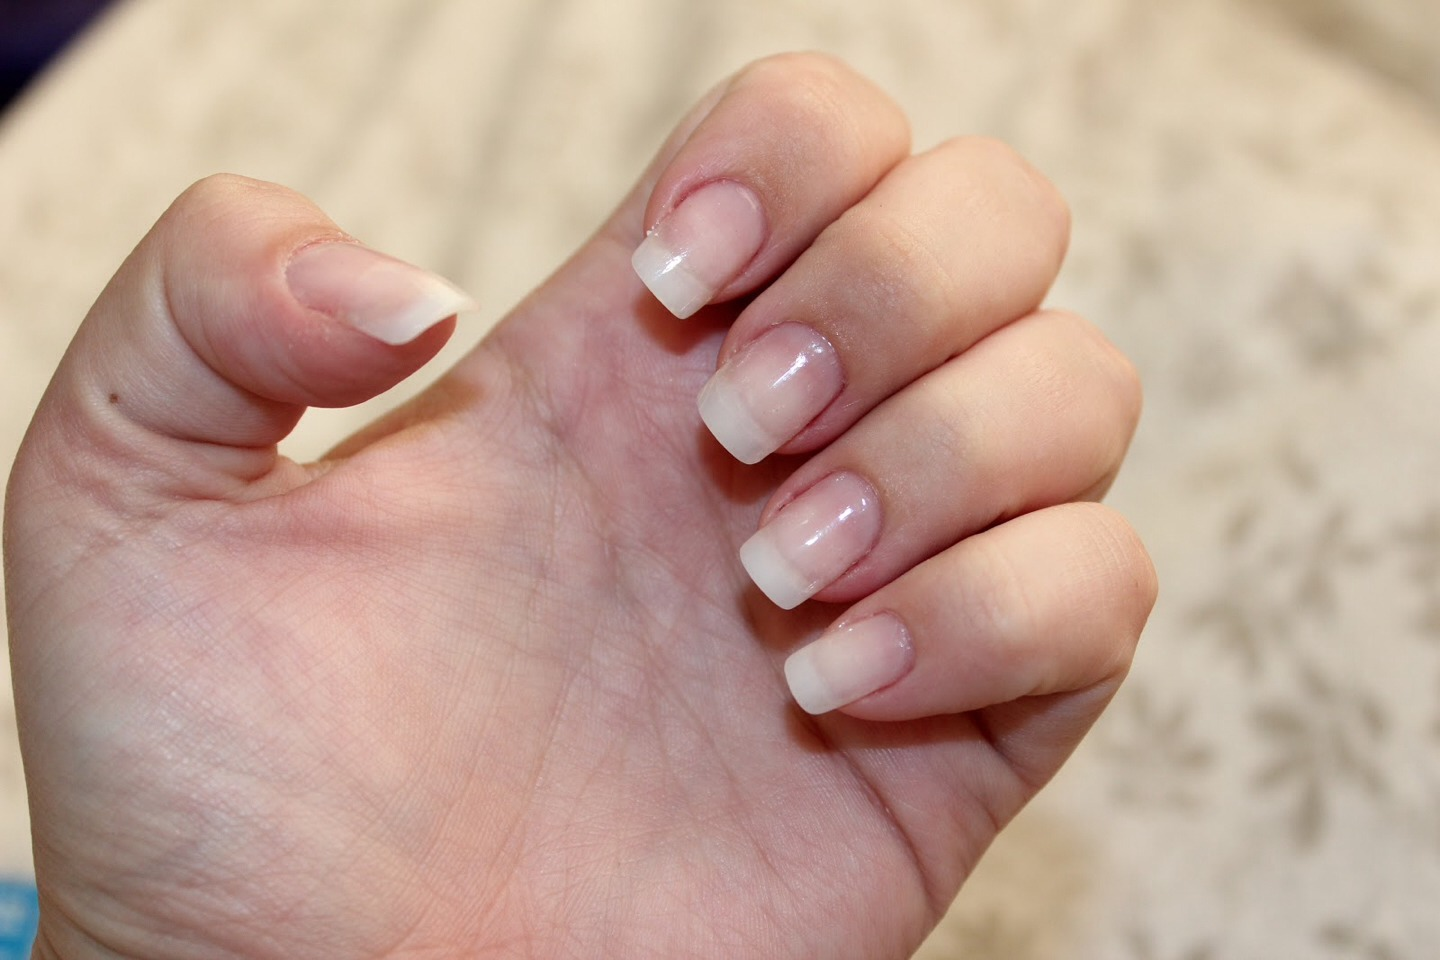 Start with a clear coat on nails